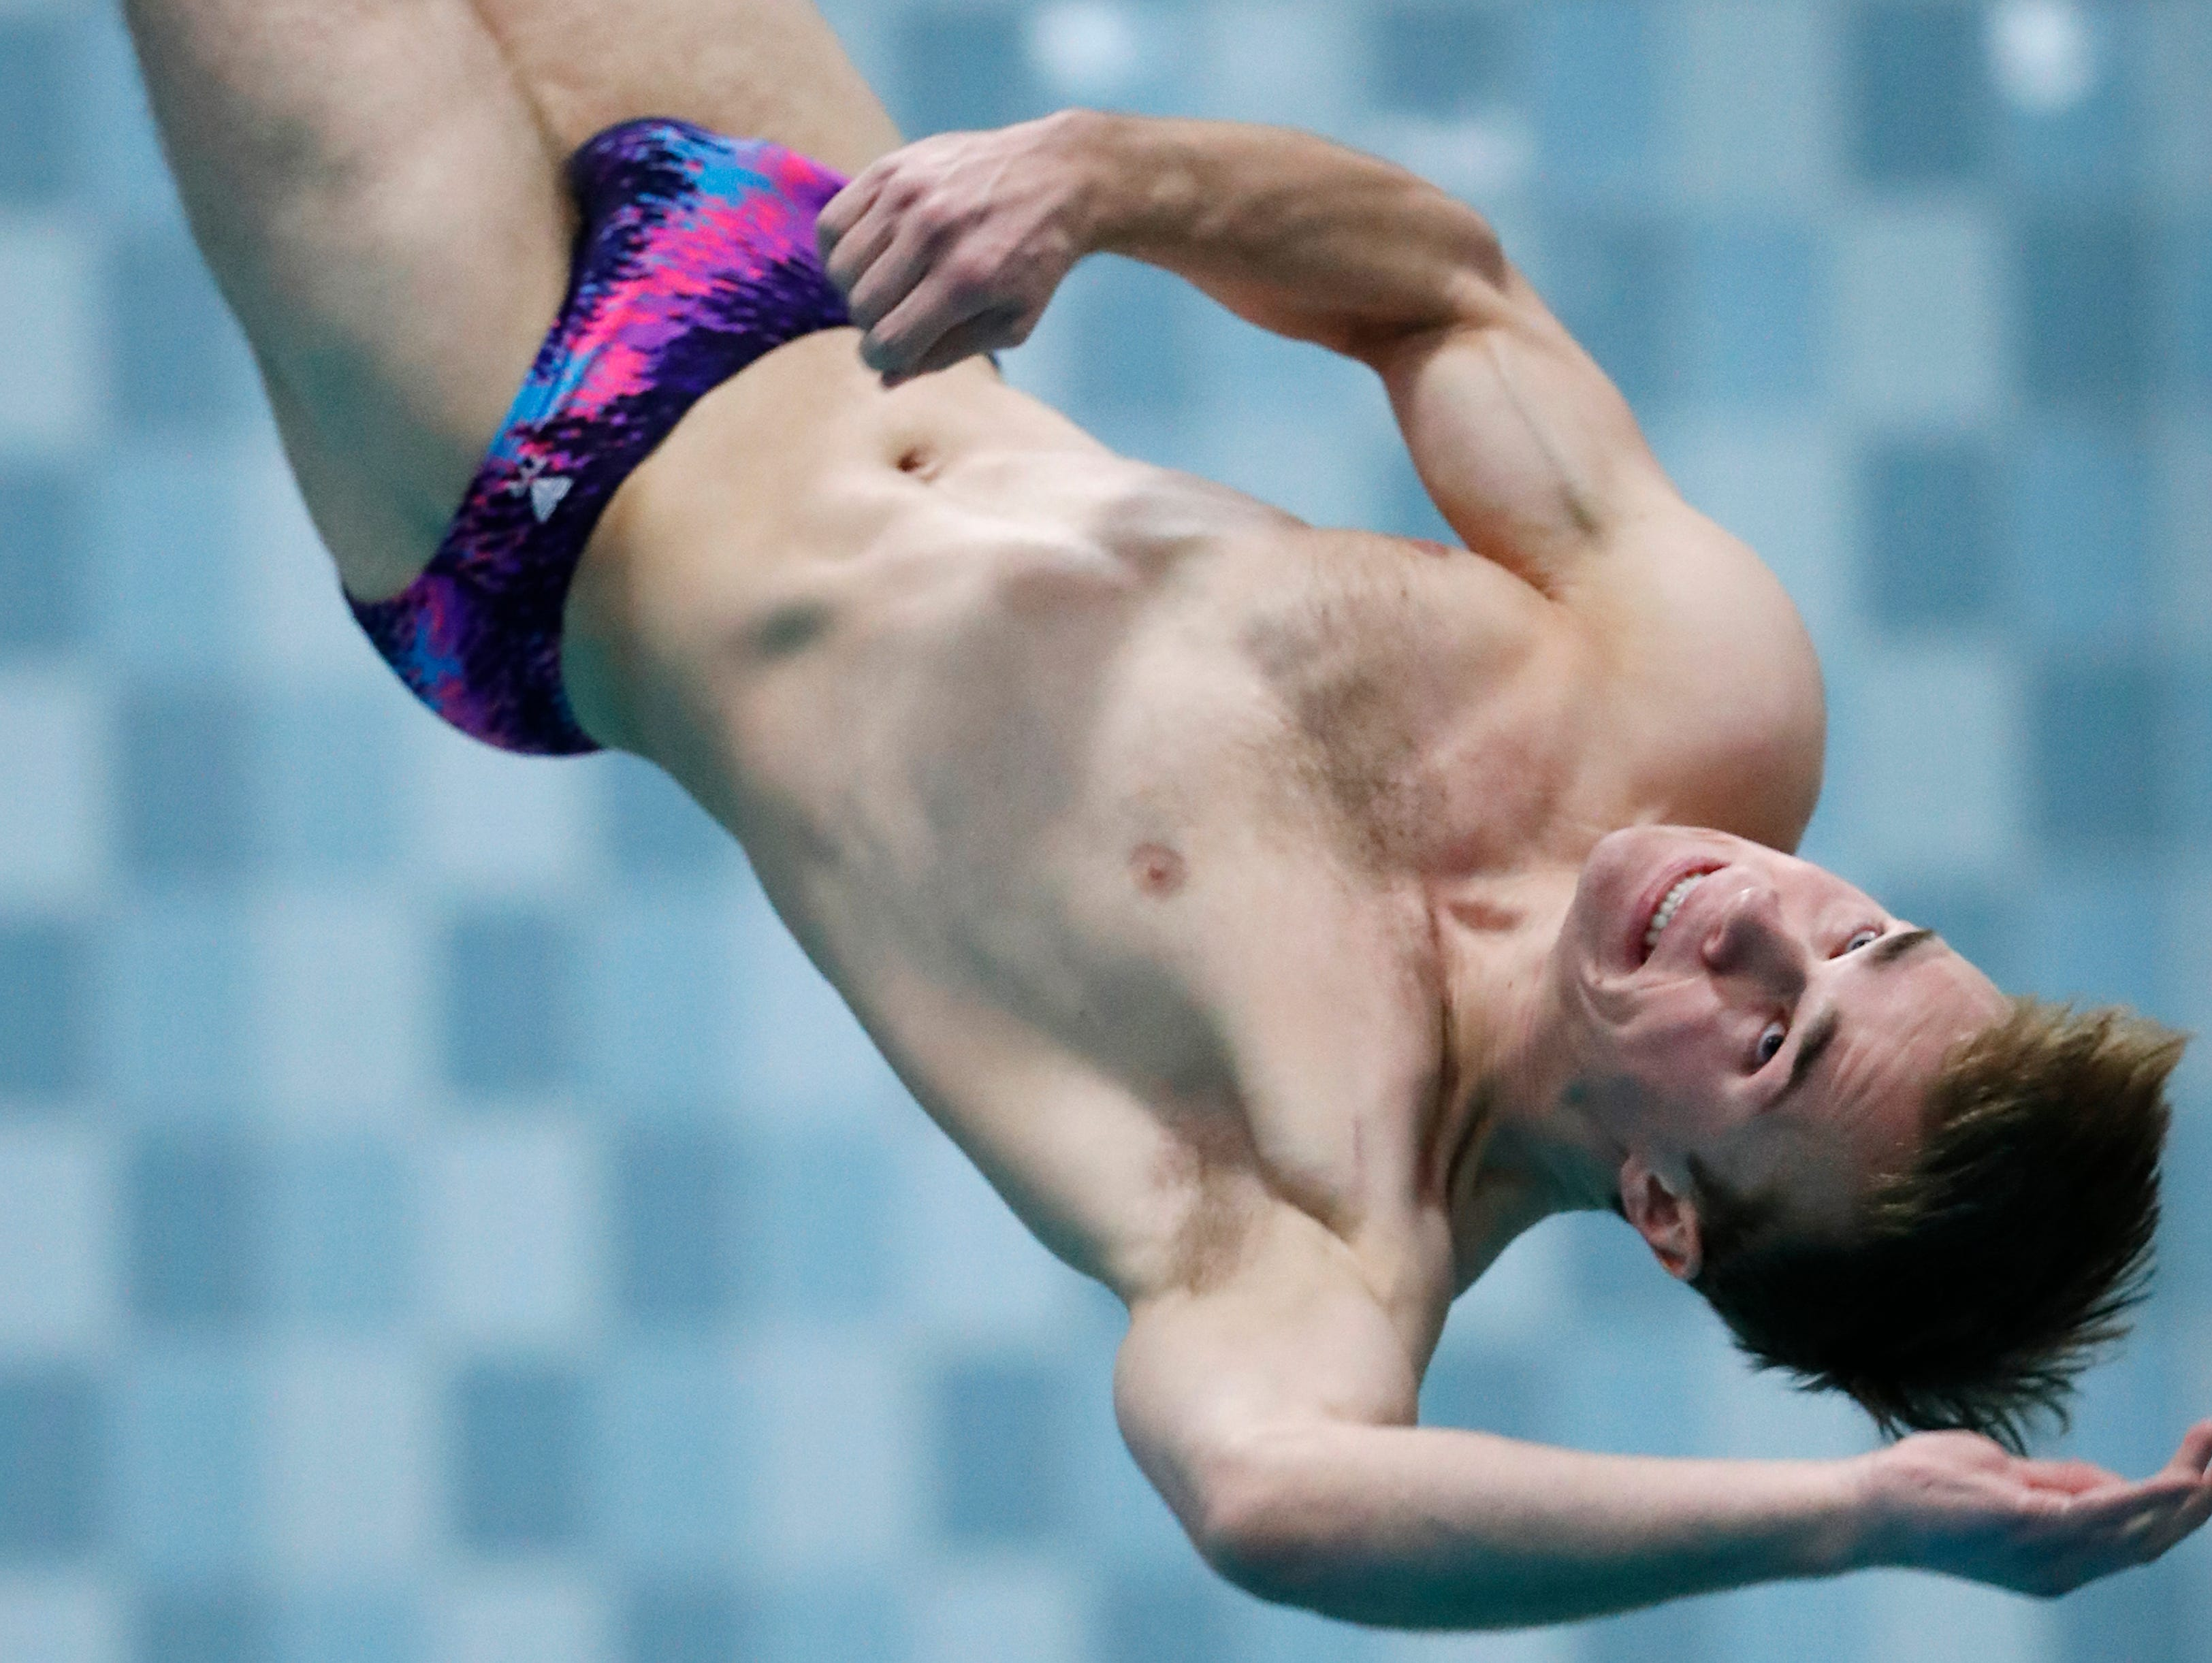 Franklin's Jared Kleczka dives during the Division 1 2019 State Boys Swimming and Diving Championships Saturday, Feb. 16, 2019, at the UW Natatorium in Madison, Wis.Danny Damiani/USA TODAY NETWORK-Wisconsin